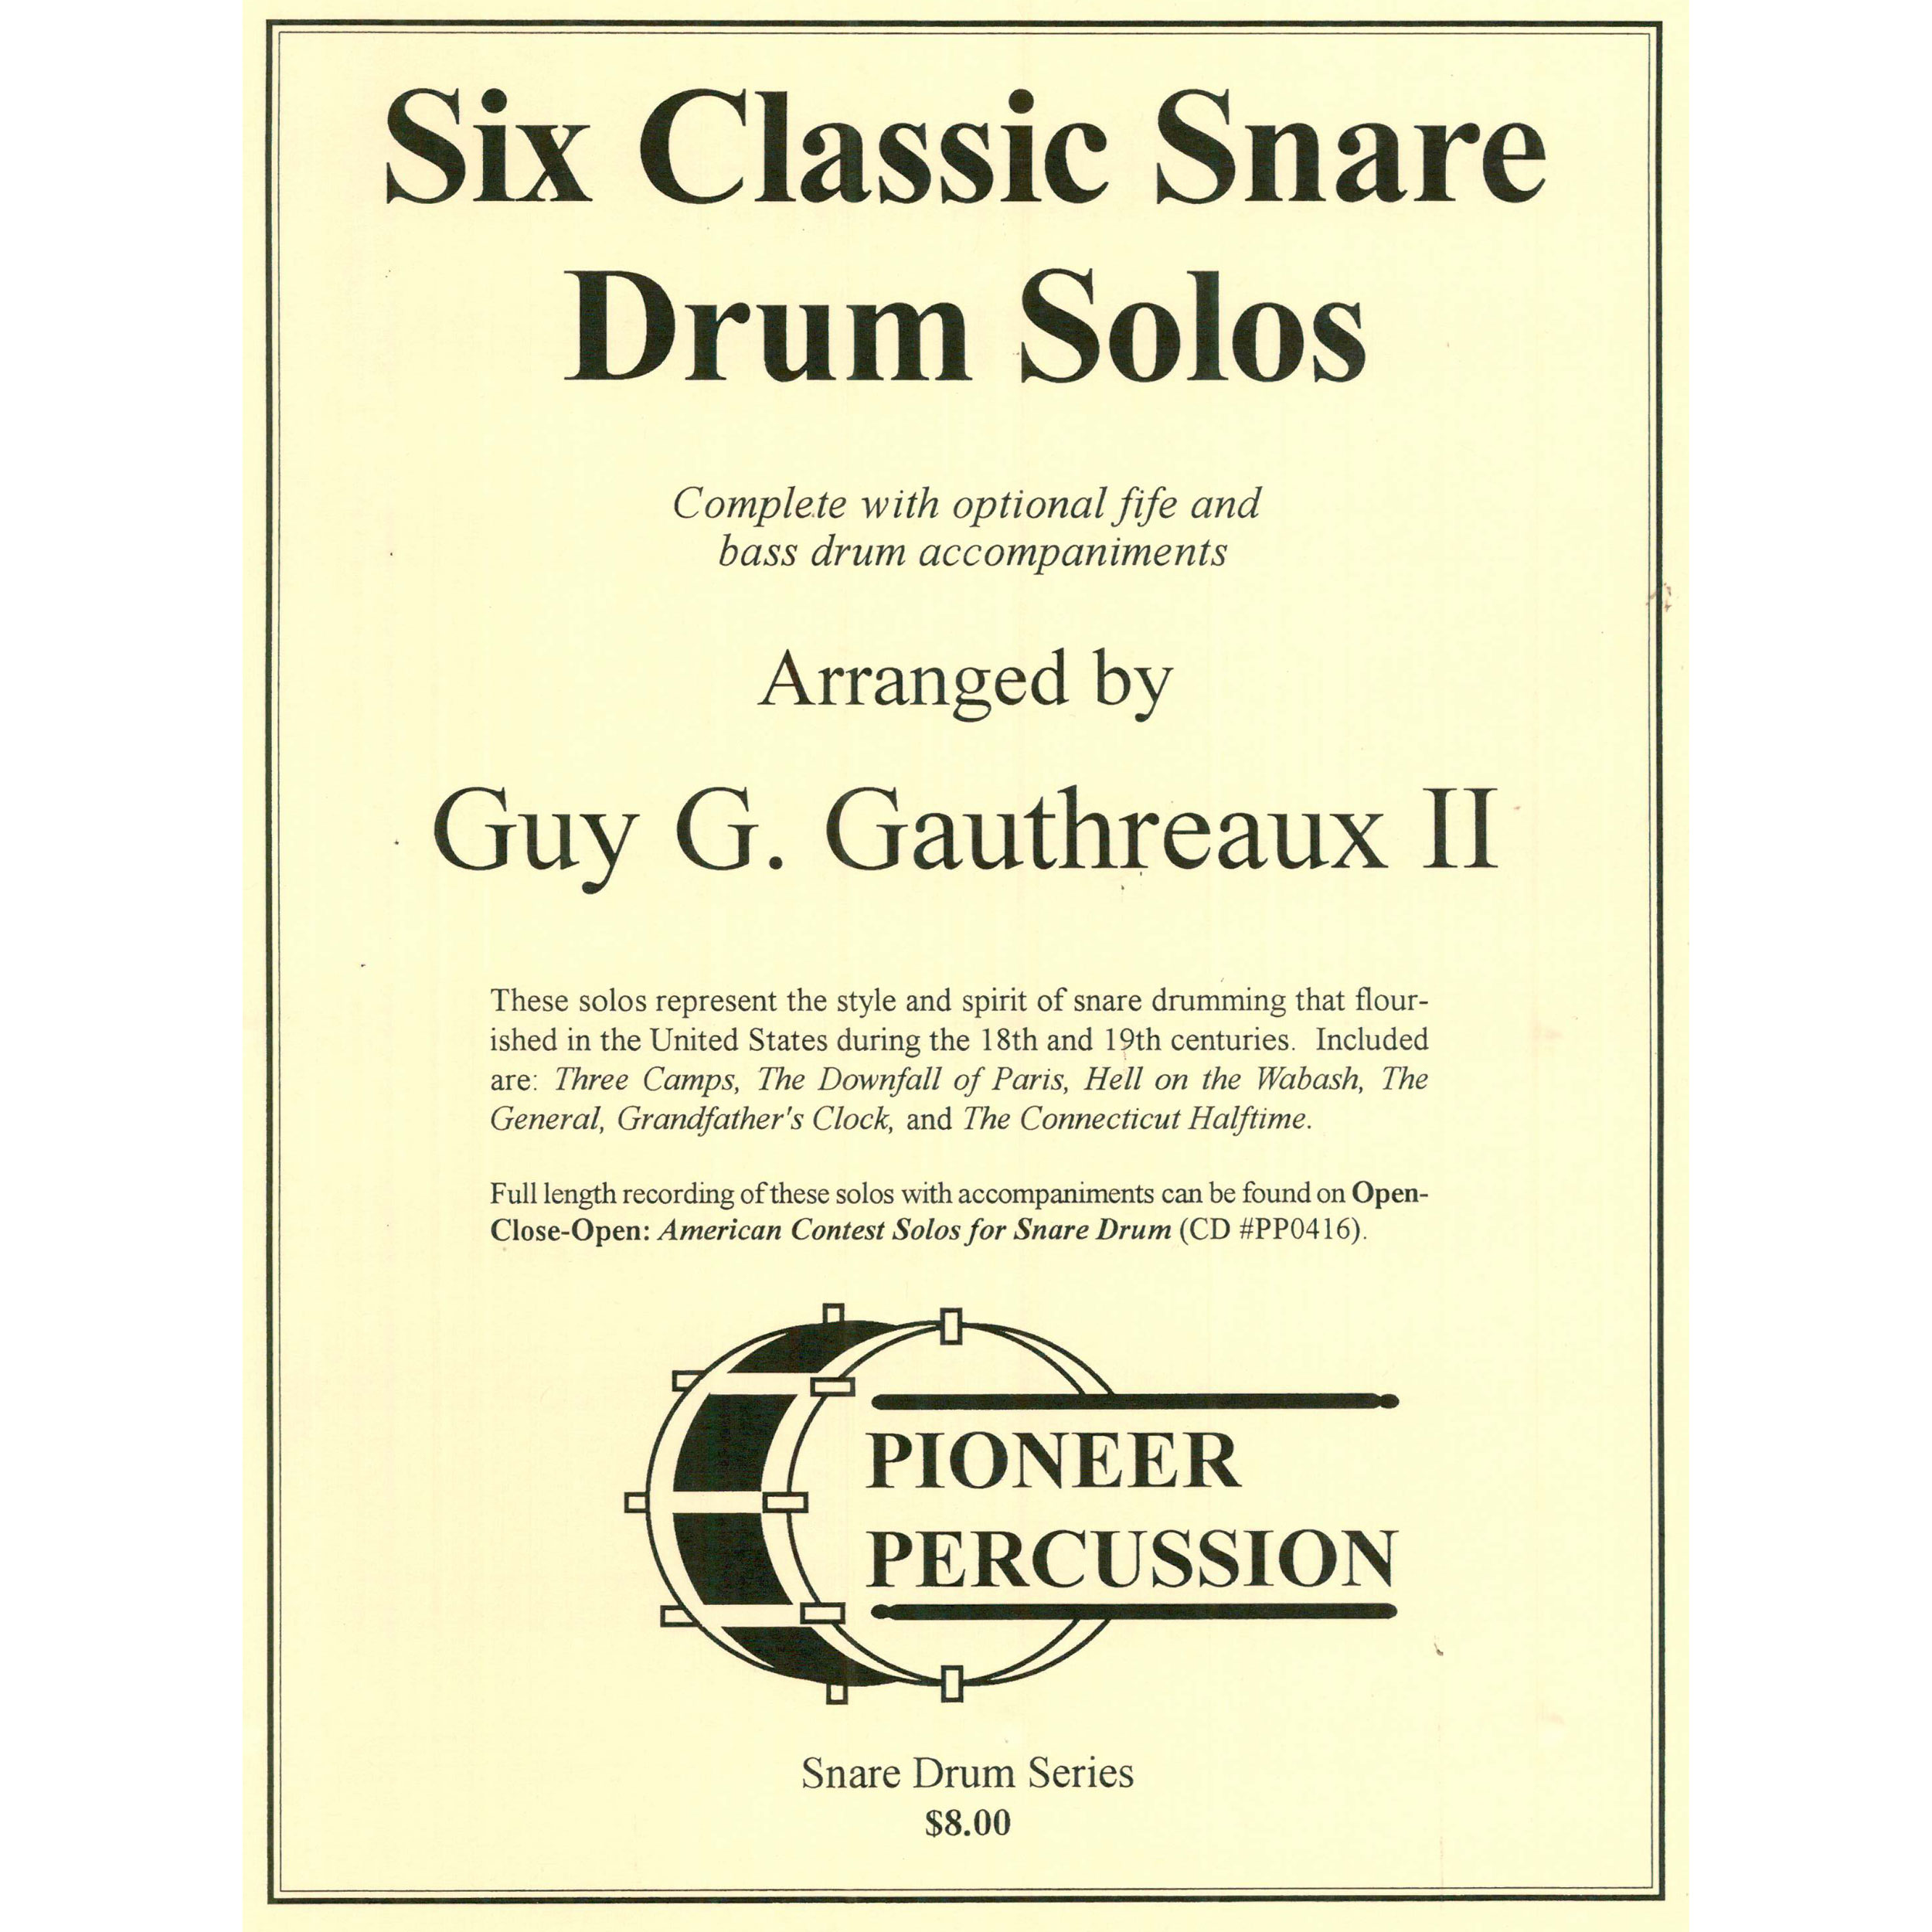 Six Classic Snare Drum Solos arr. Guy G. Gauthreaux II